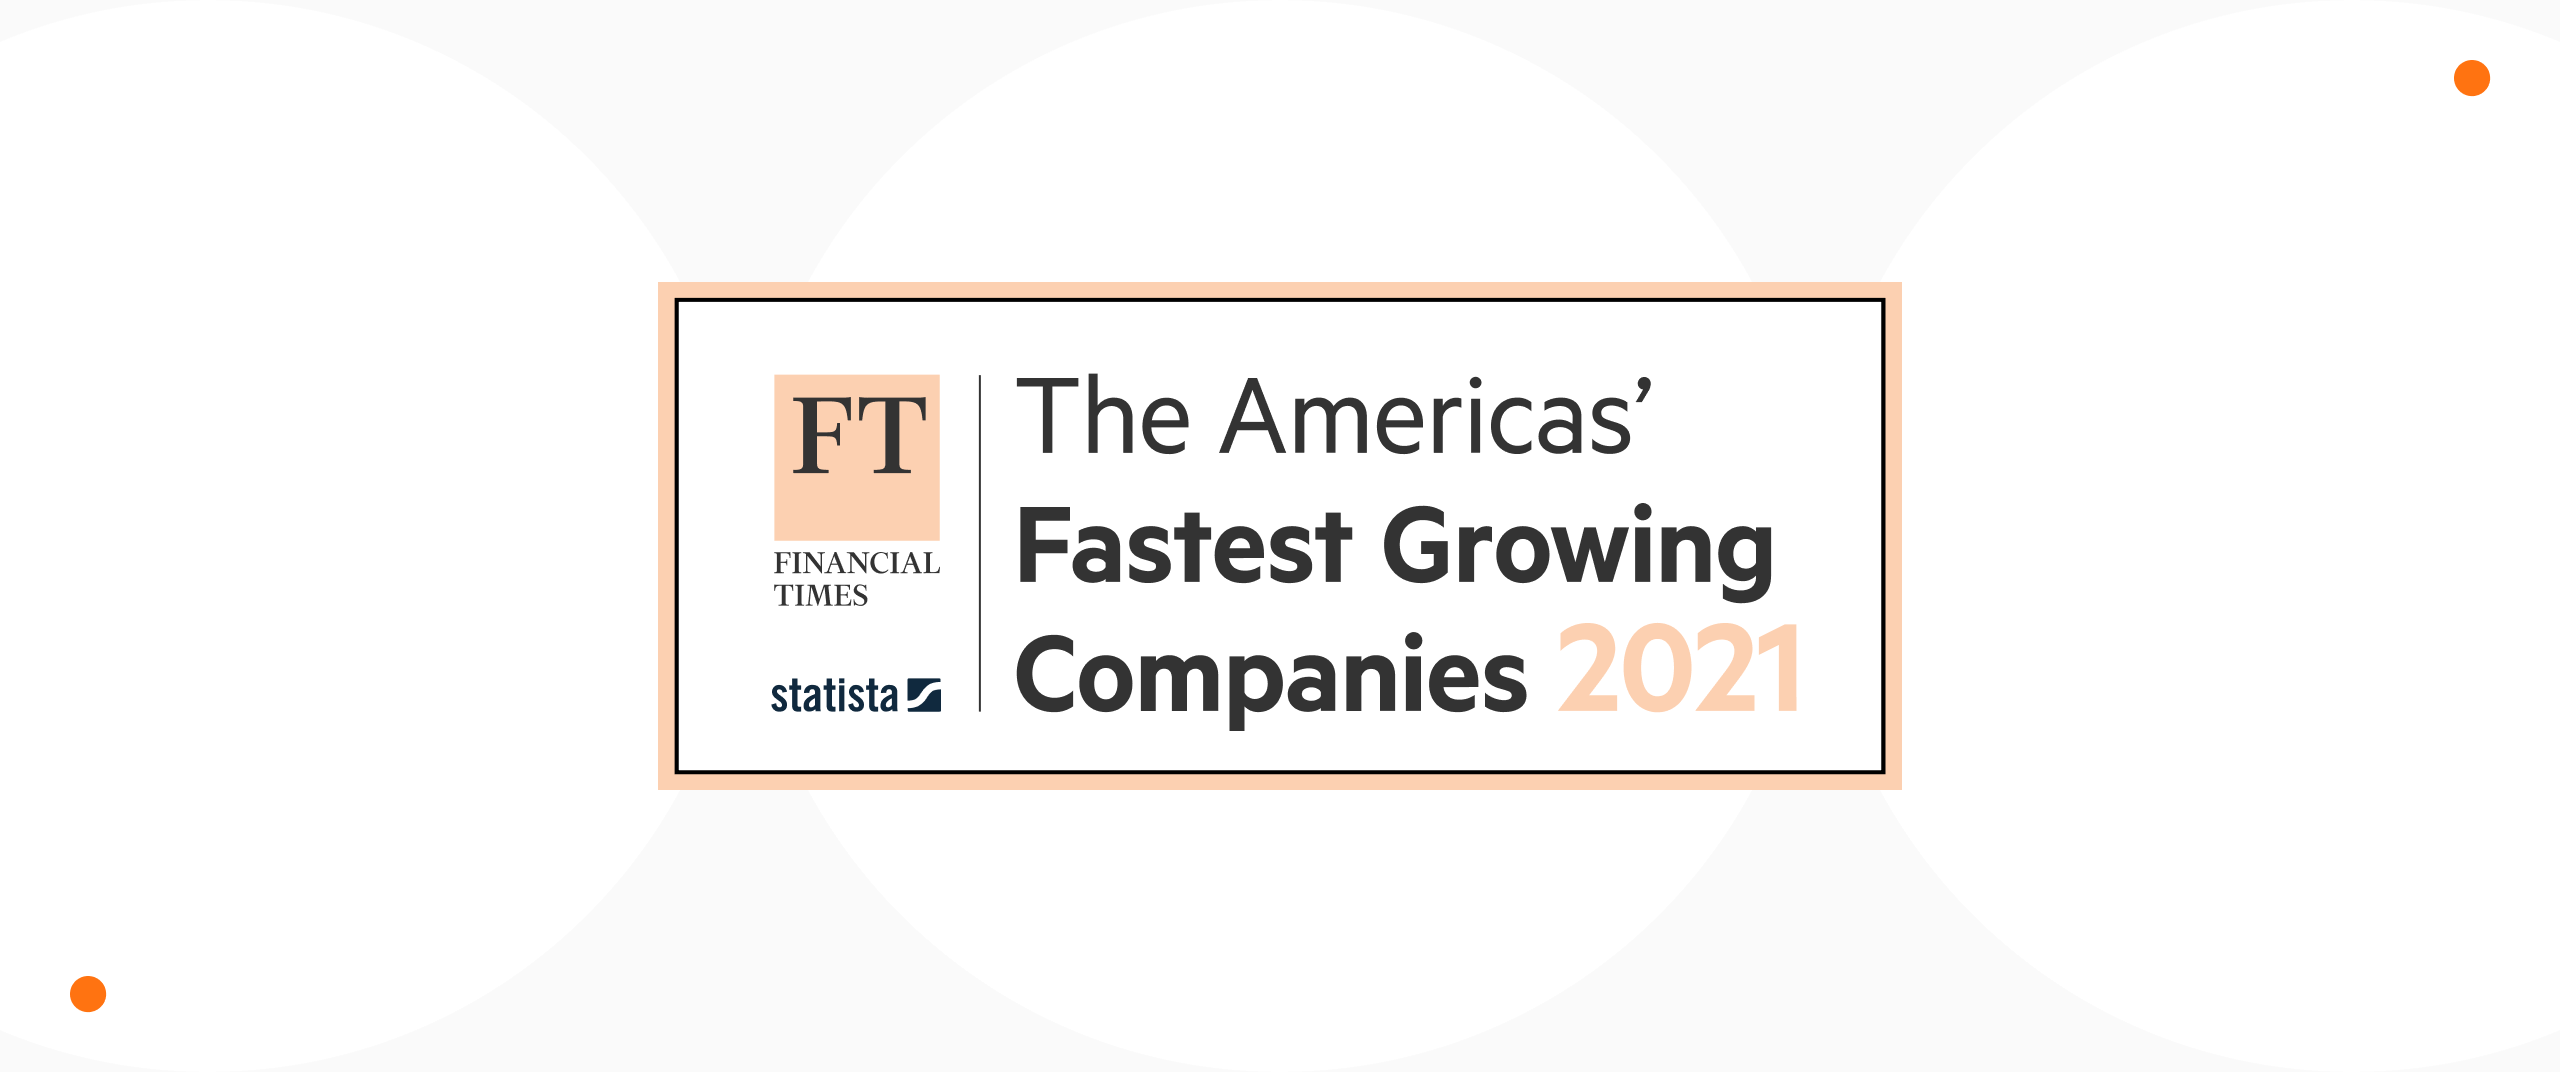 o9 Solutions recognized as one of FT The Americas' Fastest Growing Companies 2021